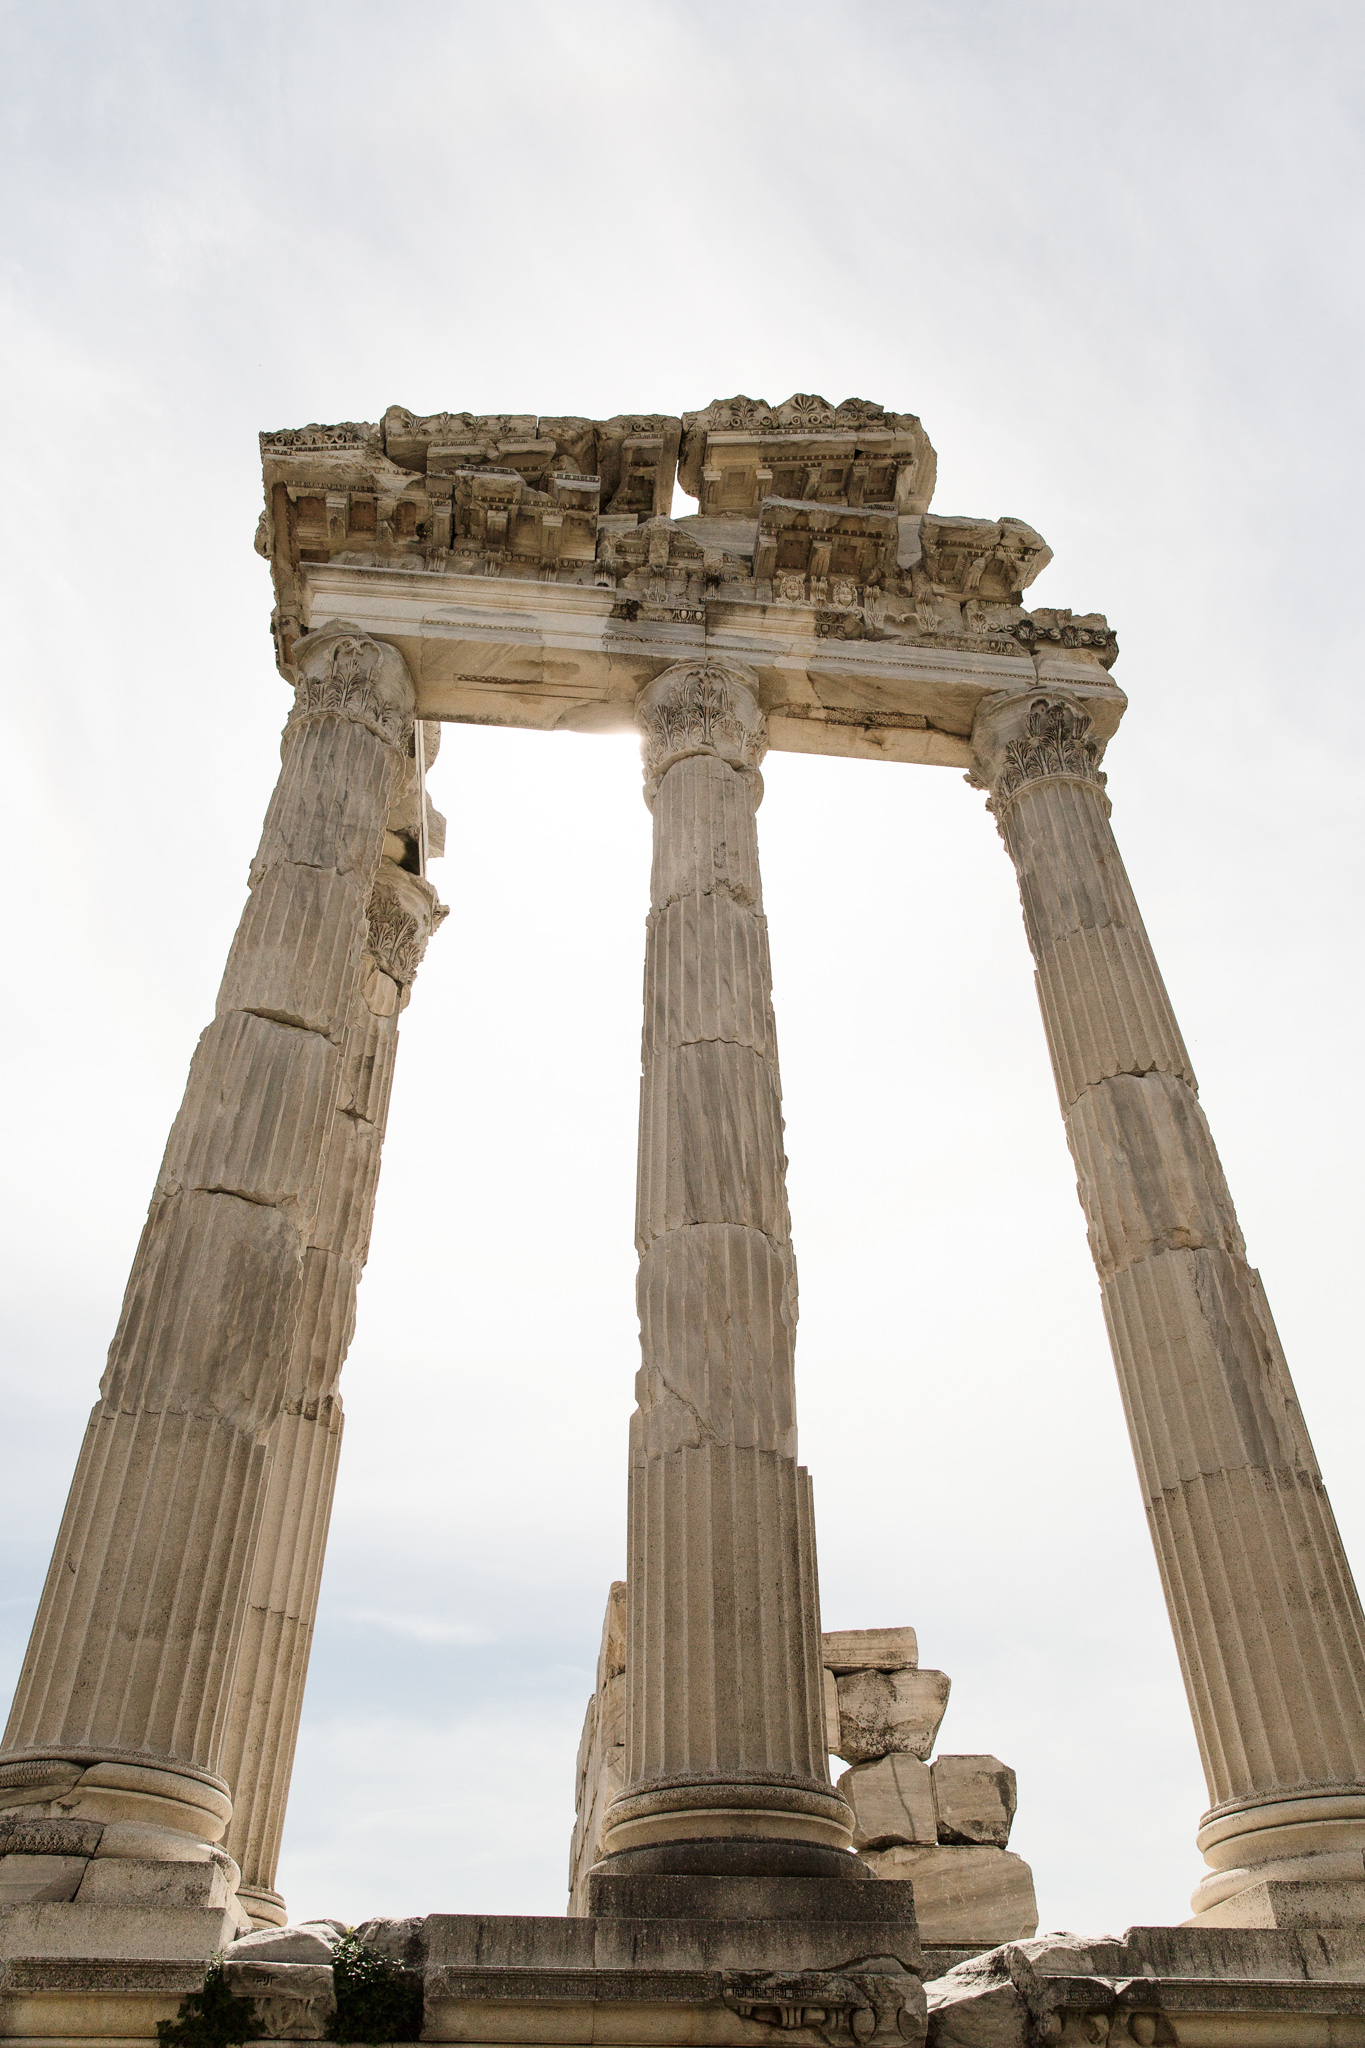 bergama_ruins-pergamon-2198-main-columns-section.jpg